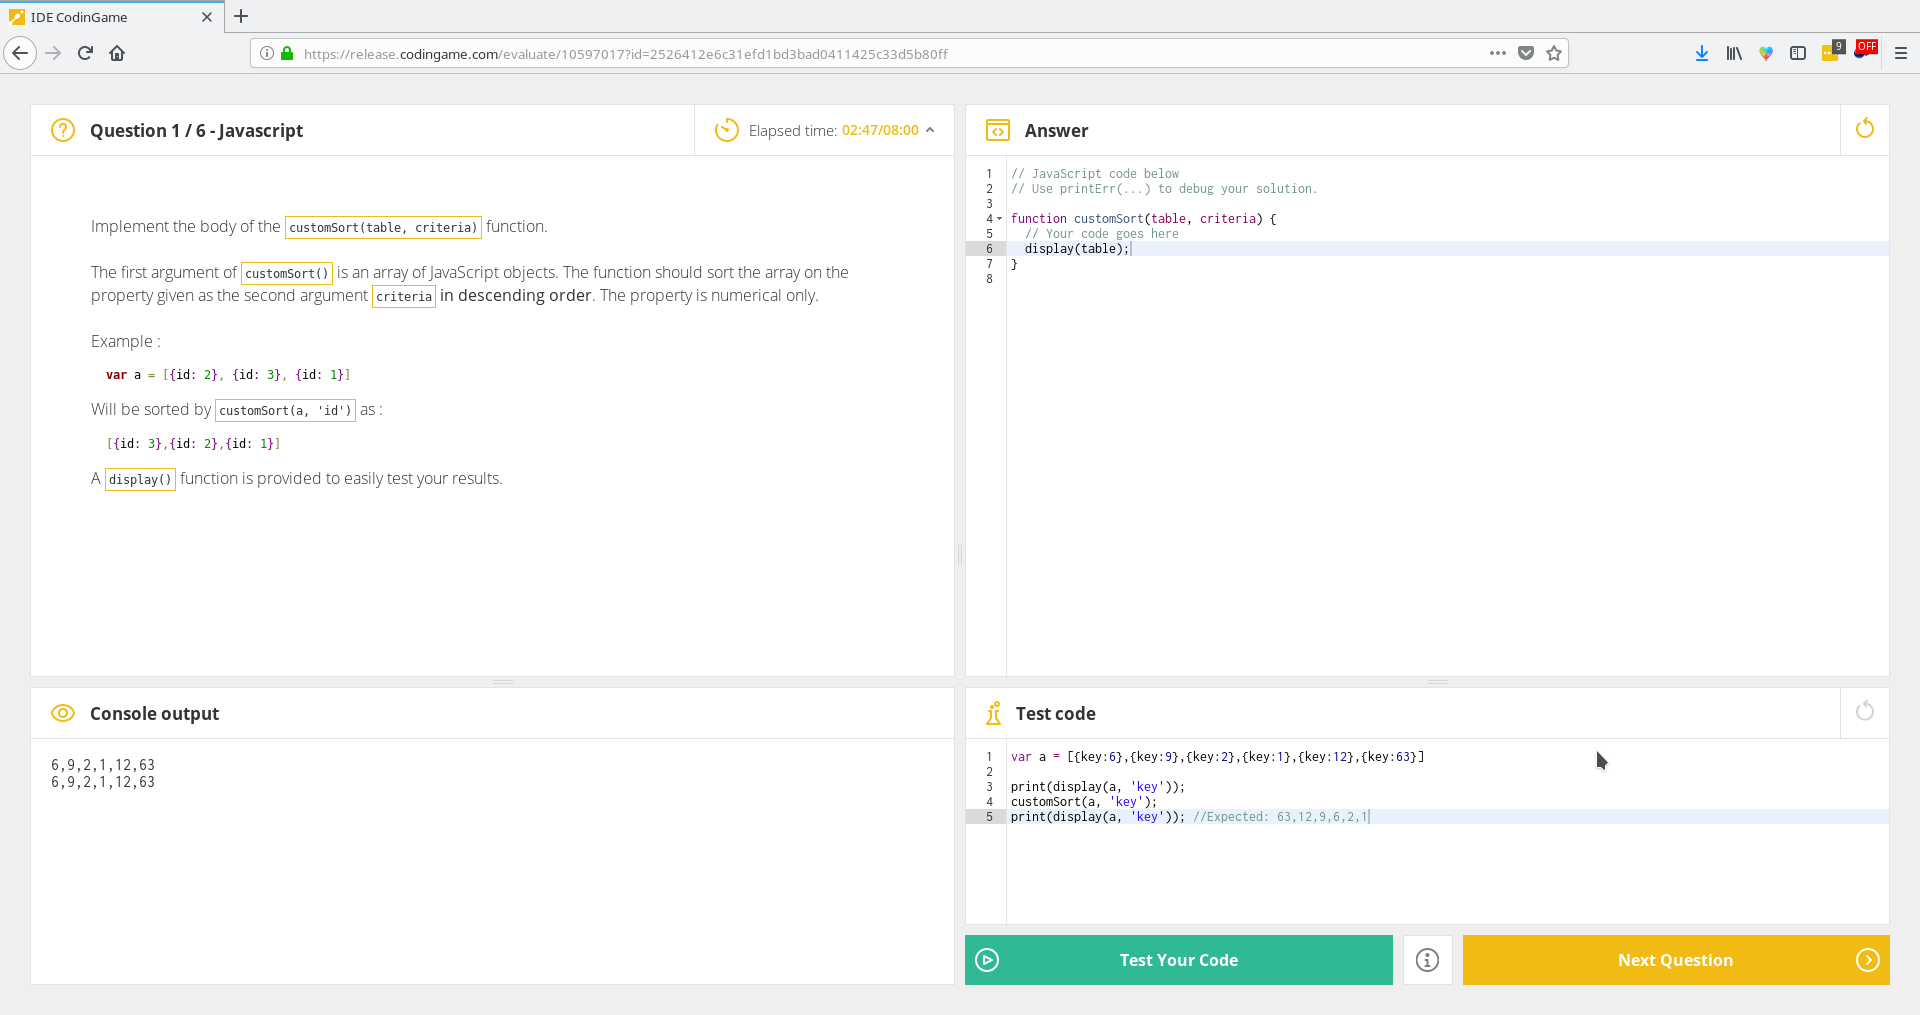 15 Tips to Make the Most of the CodinGame Platform